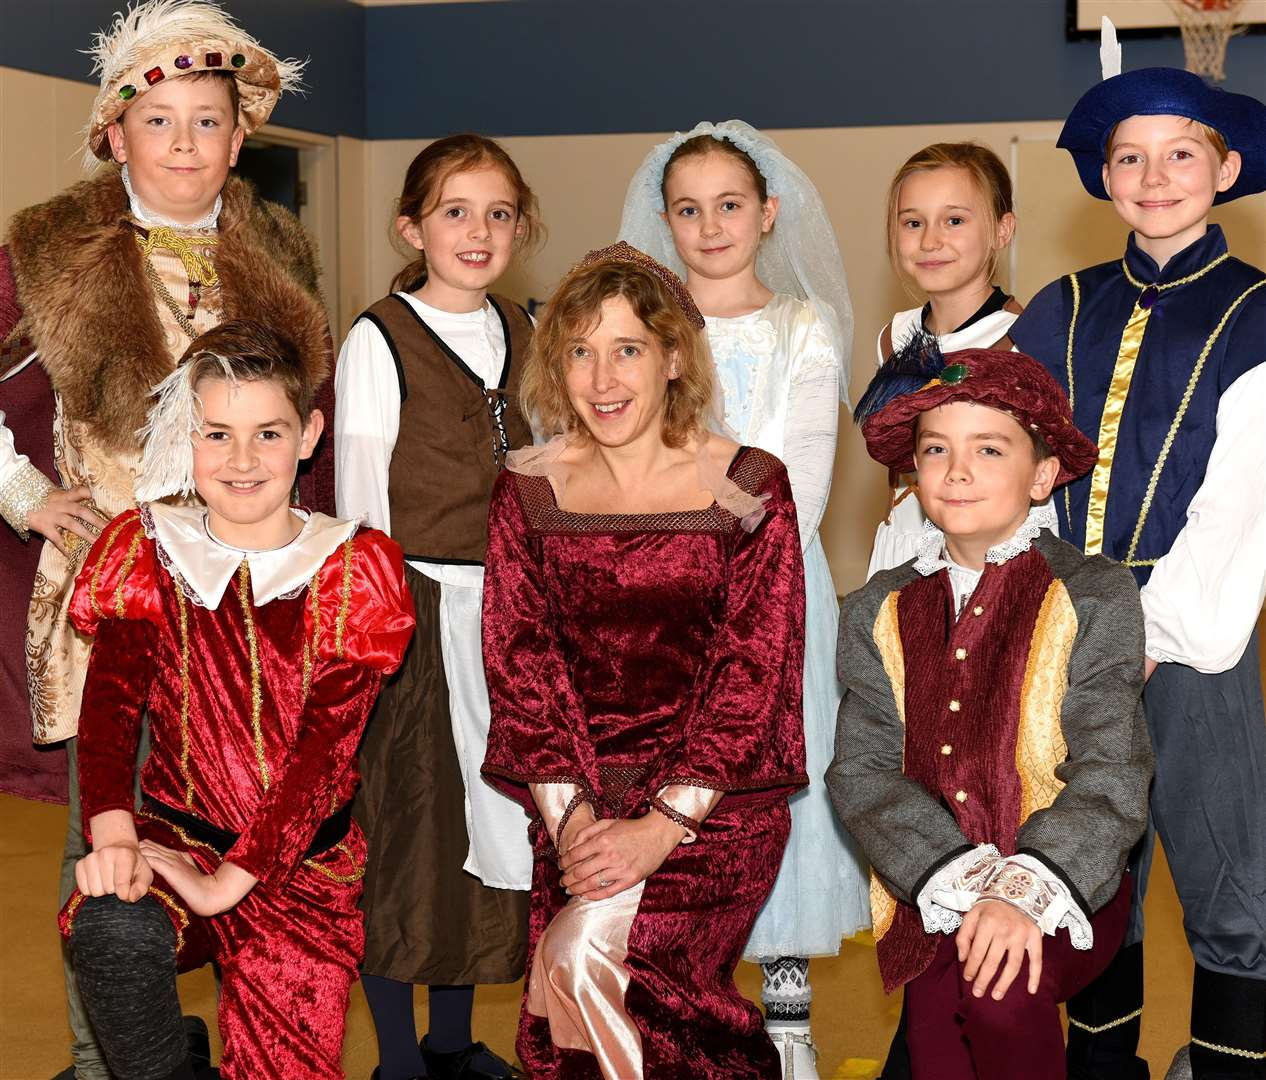 History day at Denver Primary School, each class has been given a different period of British History to explore (i.e. Stone Age, Victorian Britain, The Iron Age and the Tudors)...Pupils form Class 4 Year 5/6 Tudors, they are pictured with Class Teacher Dawn Henden... (22463911)